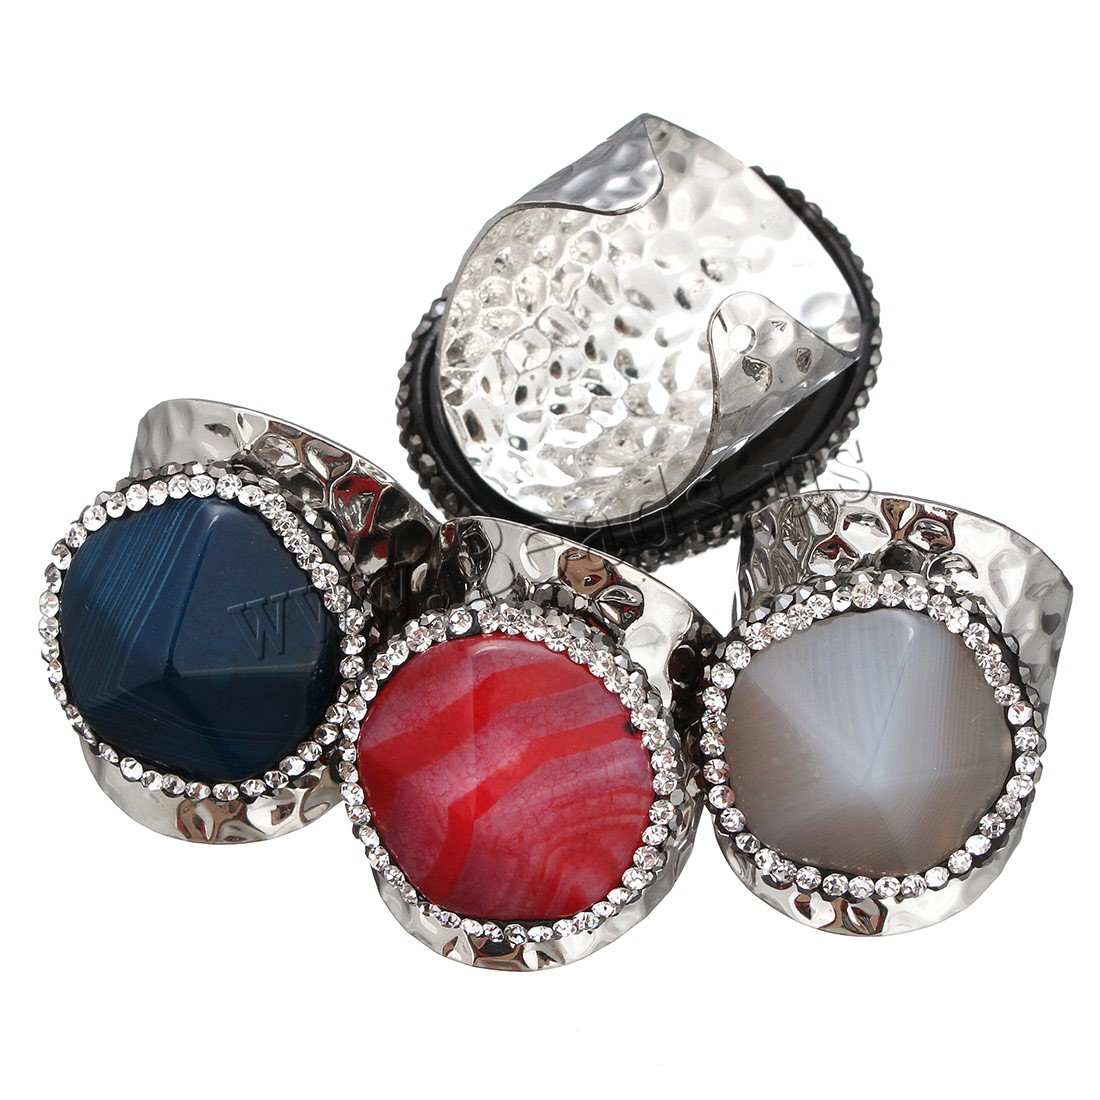 Buy Agate Cuff Finger Ring Rhinestone Clay Pave & Brass silver color plated natural & Unisex & mixed 23-28x23-36mm US Ring Size:10.5 Sold PC